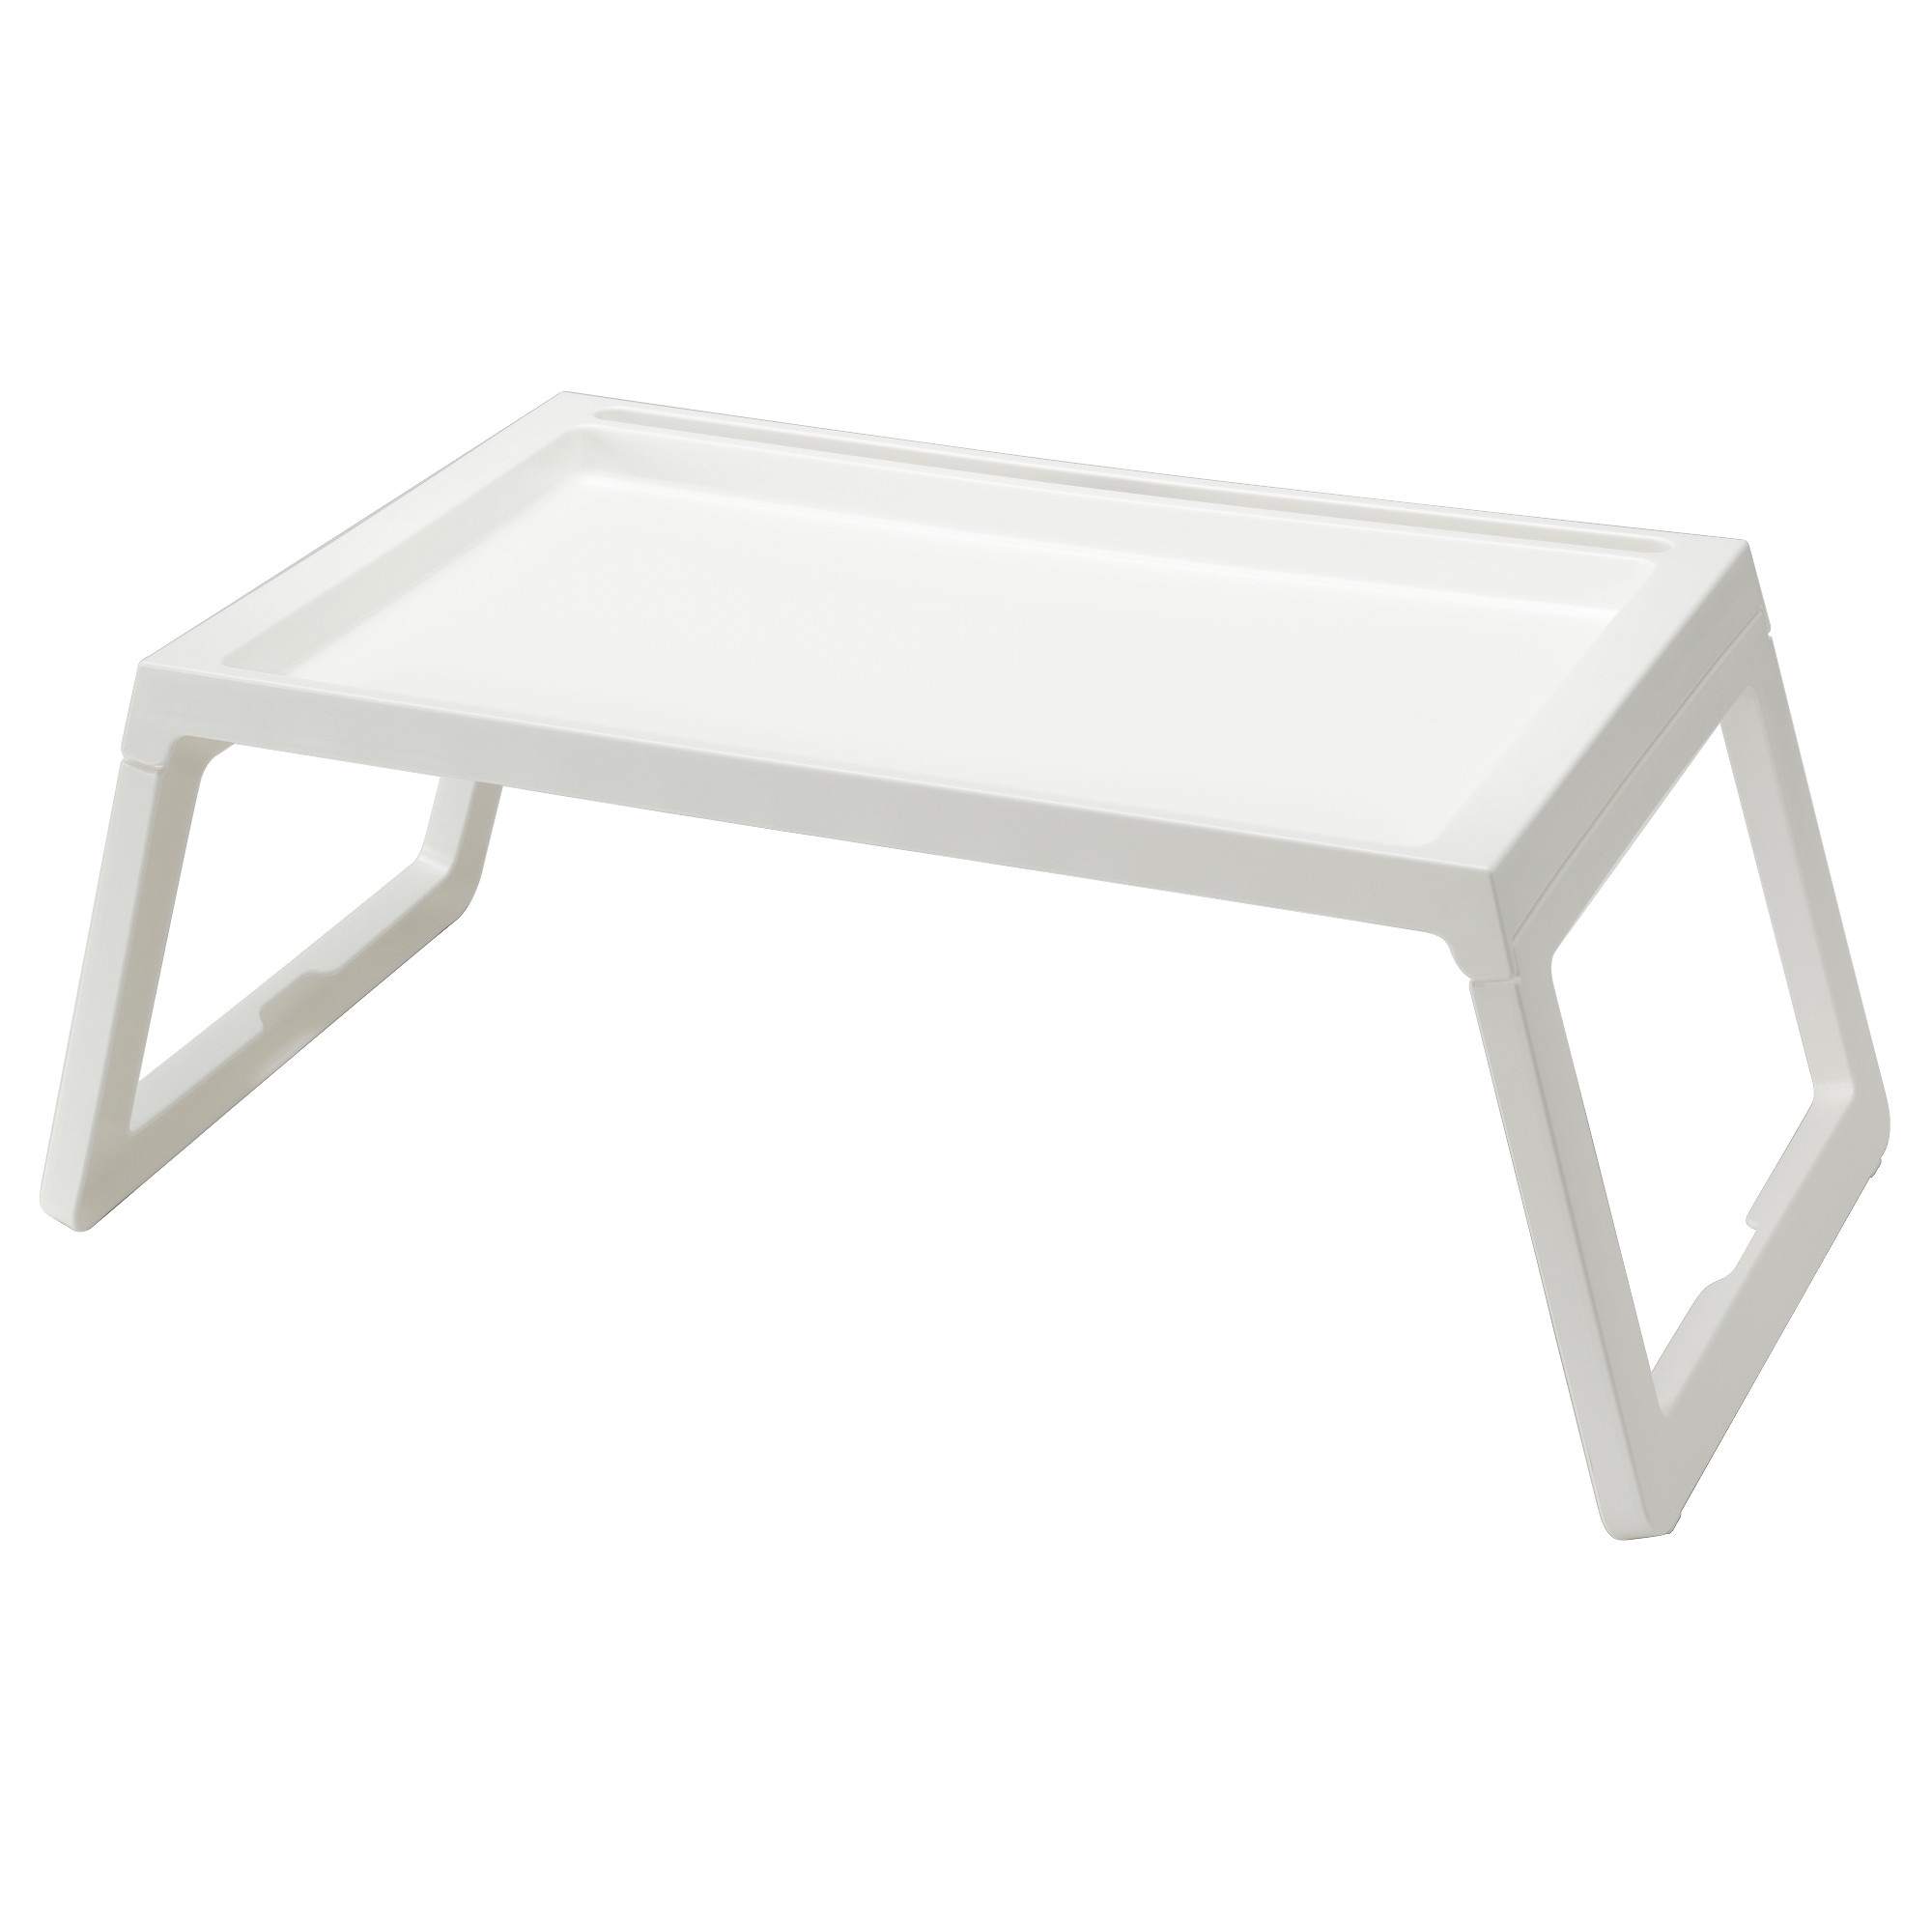 Klipsk Bed Tray White Ikea